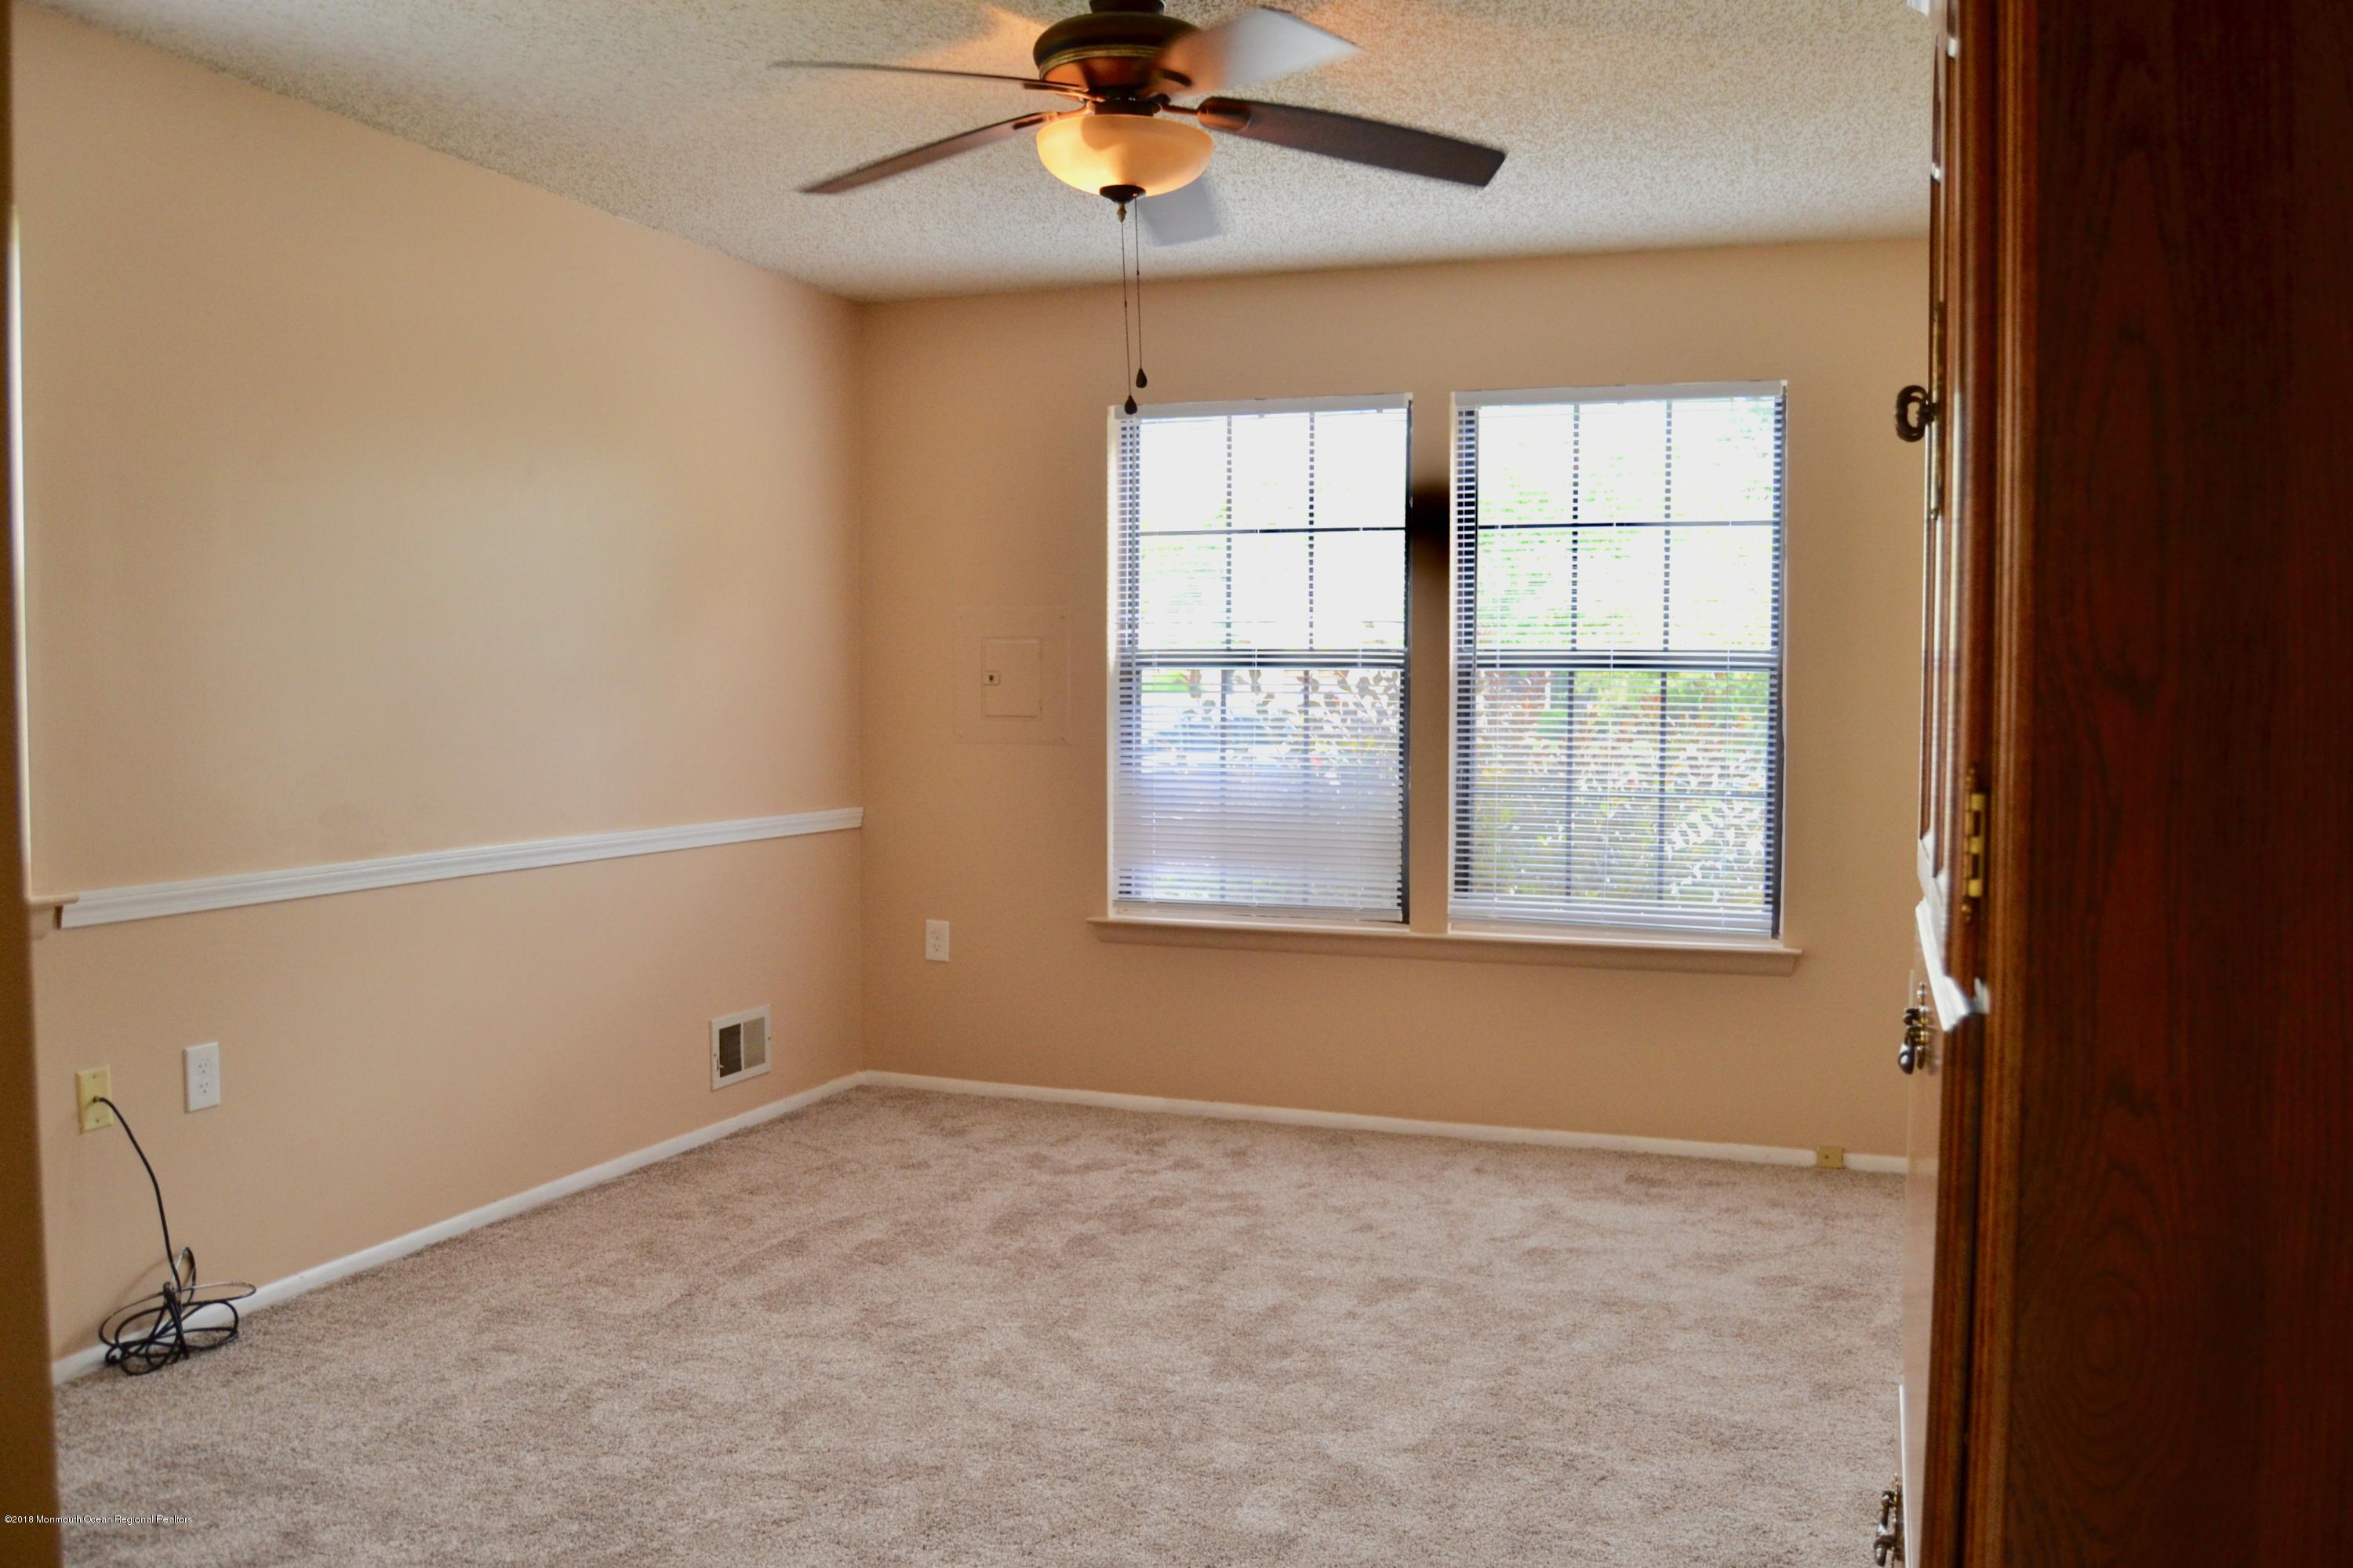 LIVING ROOM W/ NEW WALL TO WALL CARPET